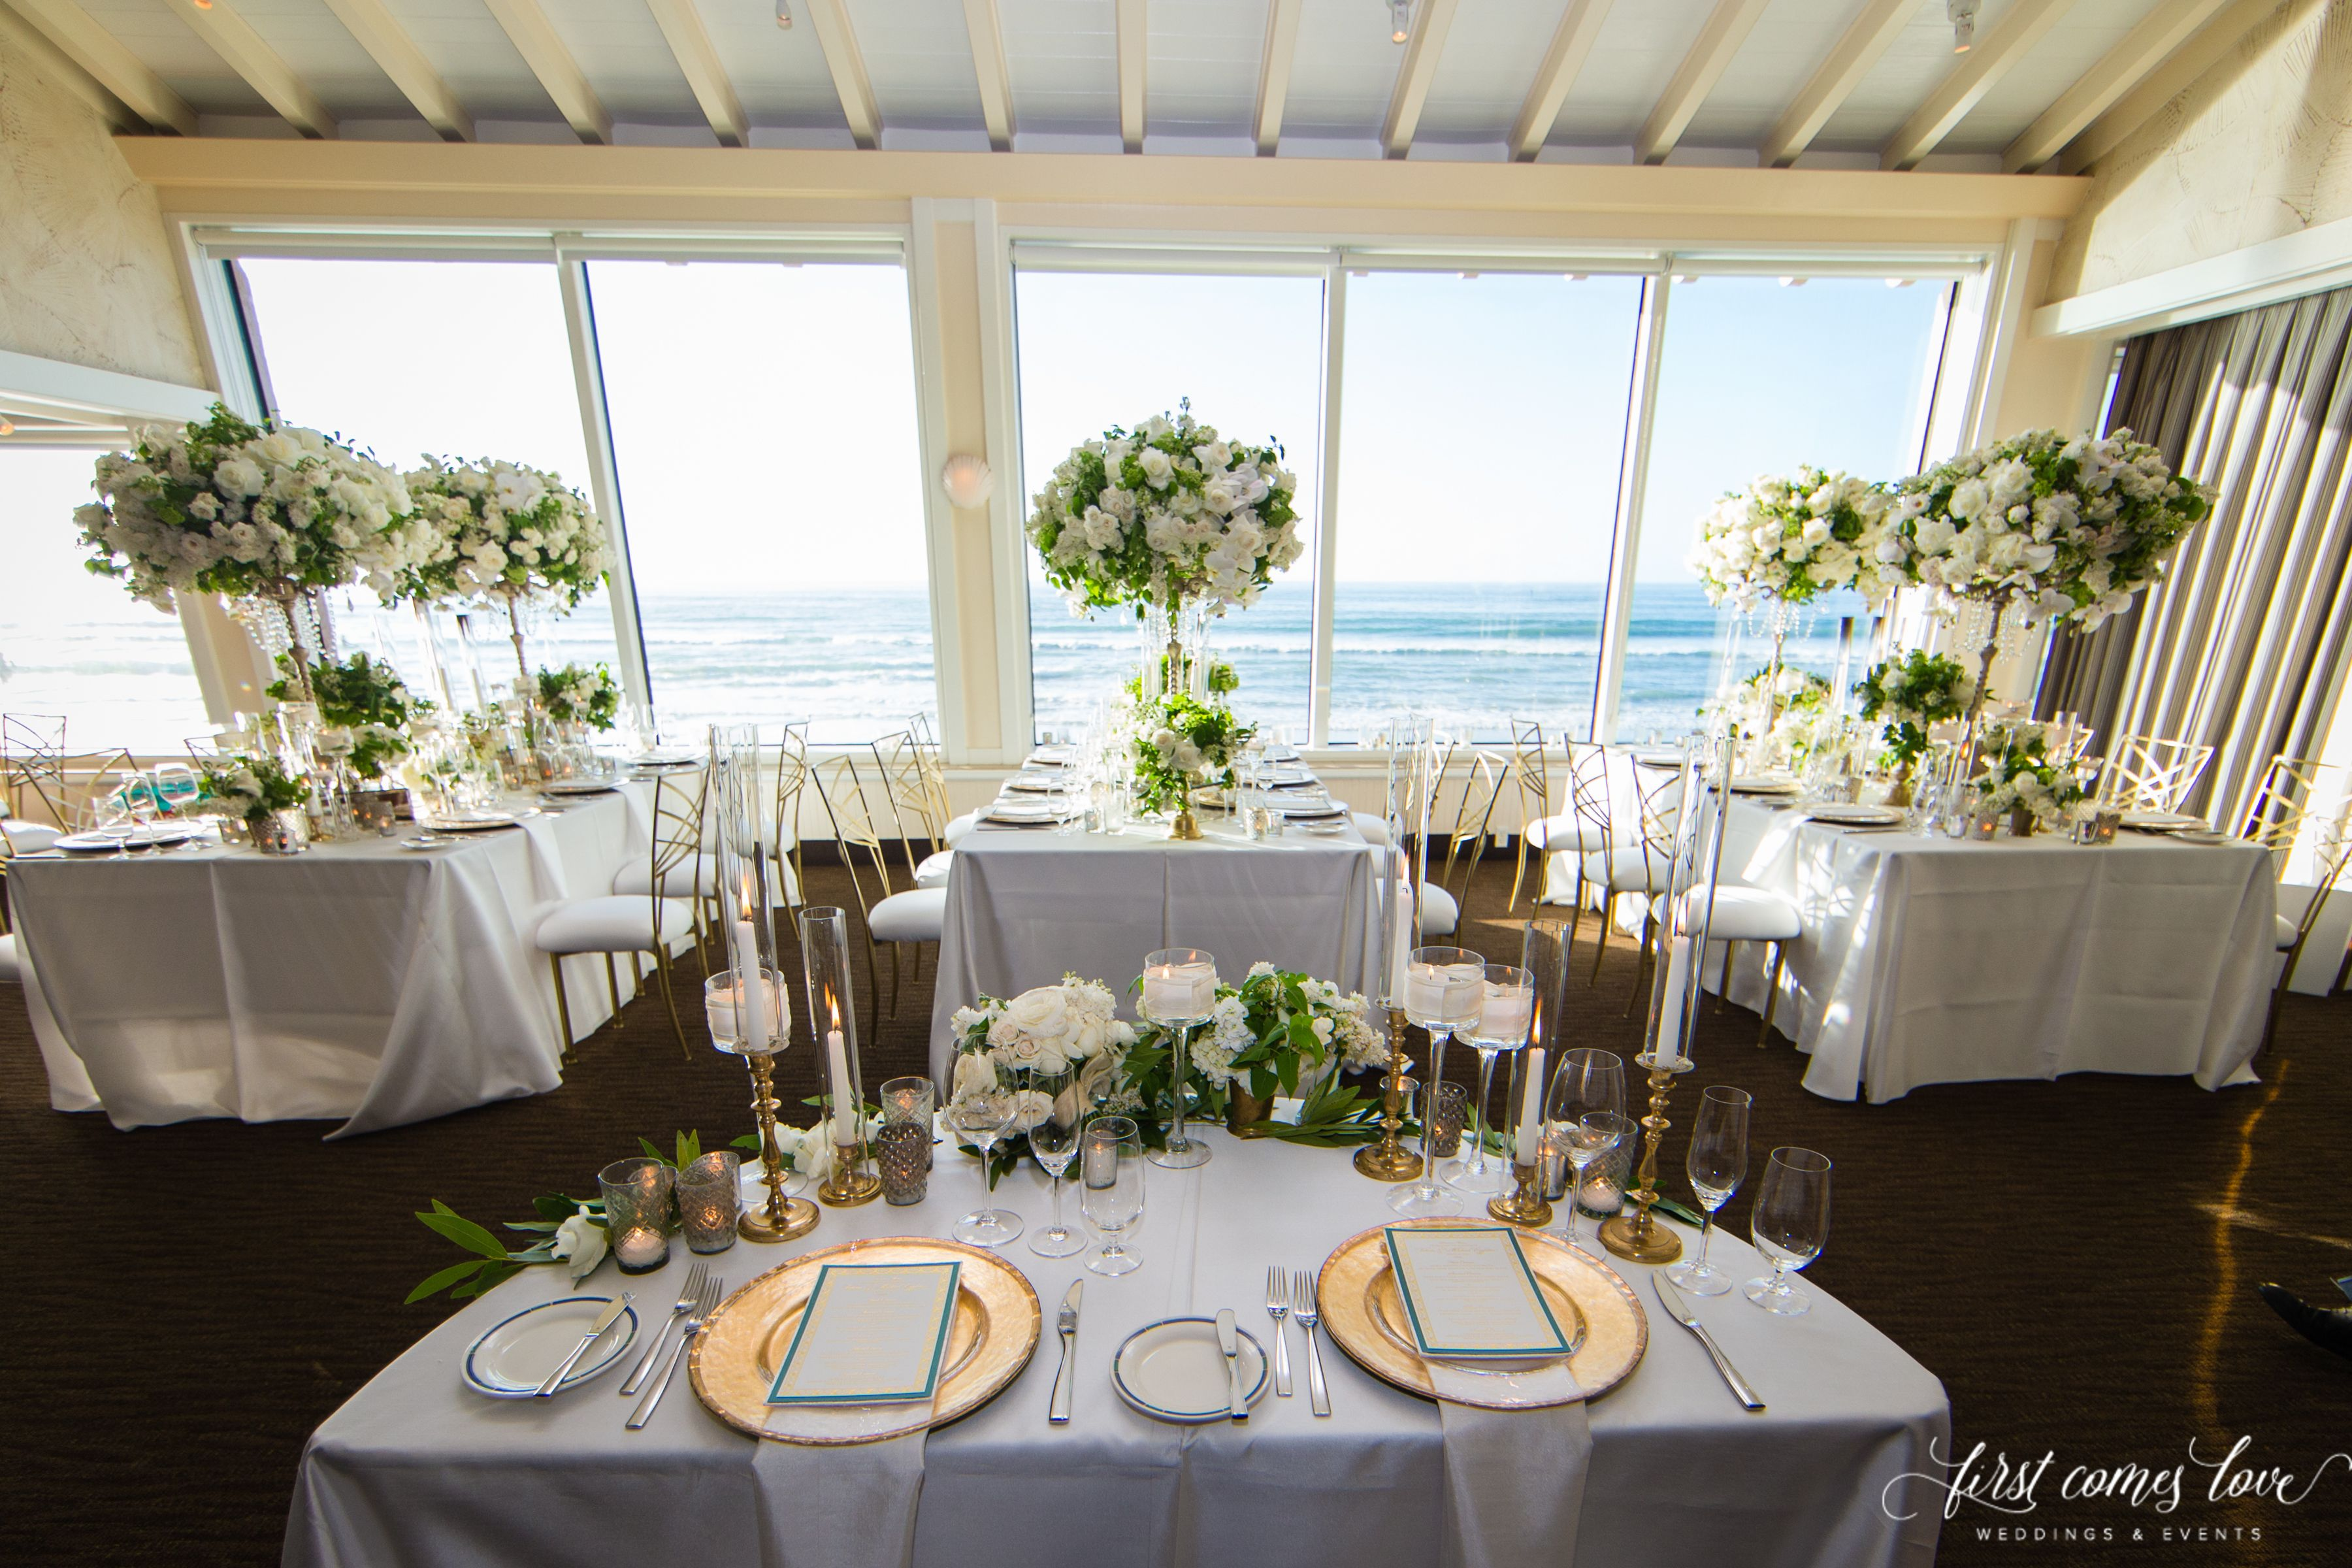 Vintage Chic Wedding Theme With Images Beach Wedding Pink